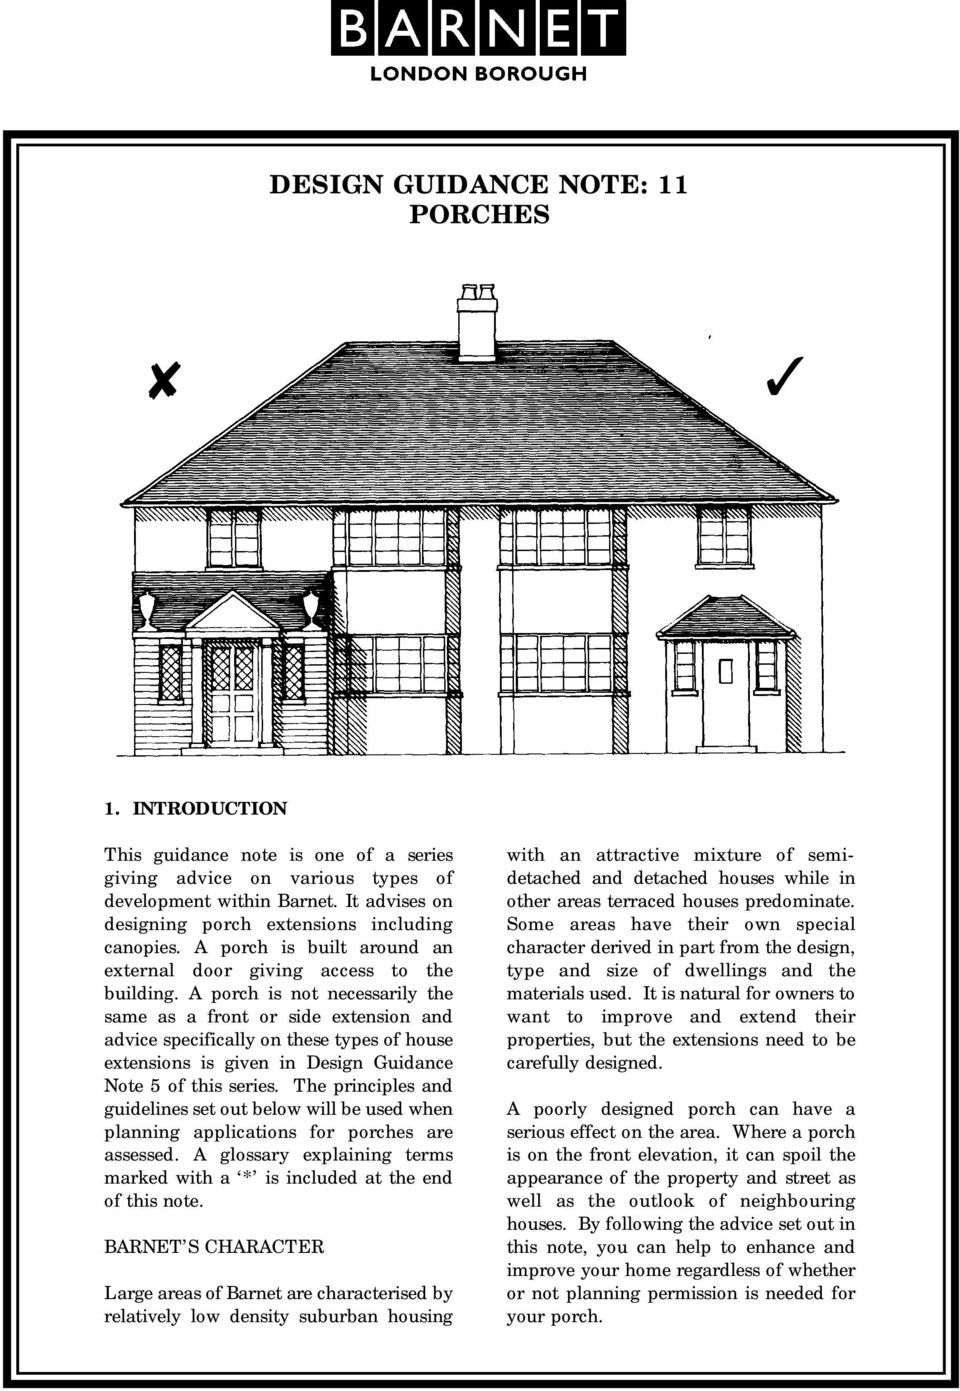 A porch is not necessarily the same as a front or side extension and advice specifically on these types of house extensions is given in Design Guidance Note 5 of this series.